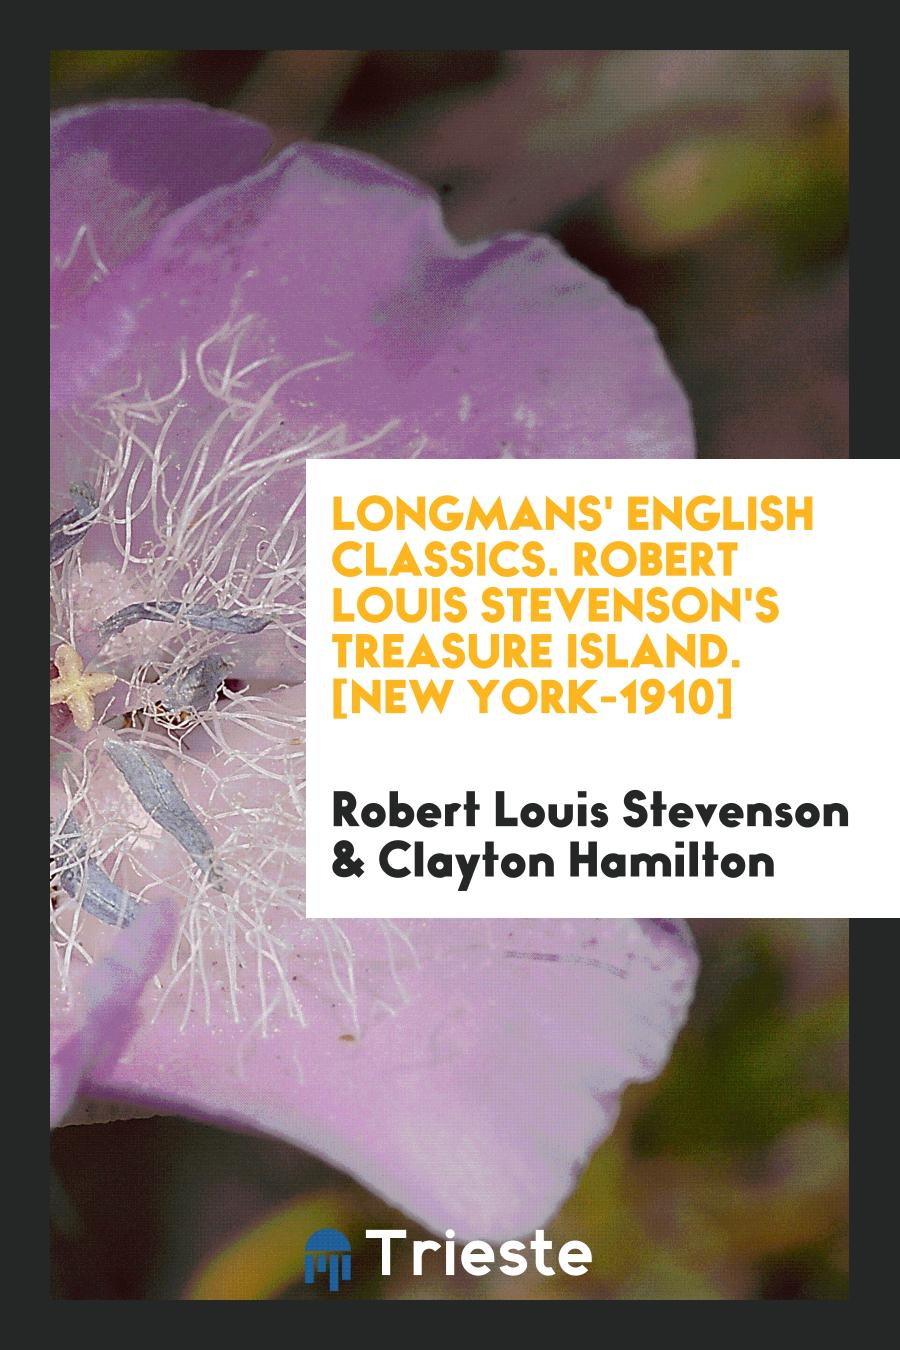 Longmans' English Classics. Robert Louis Stevenson's Treasure Island. [New York-1910]